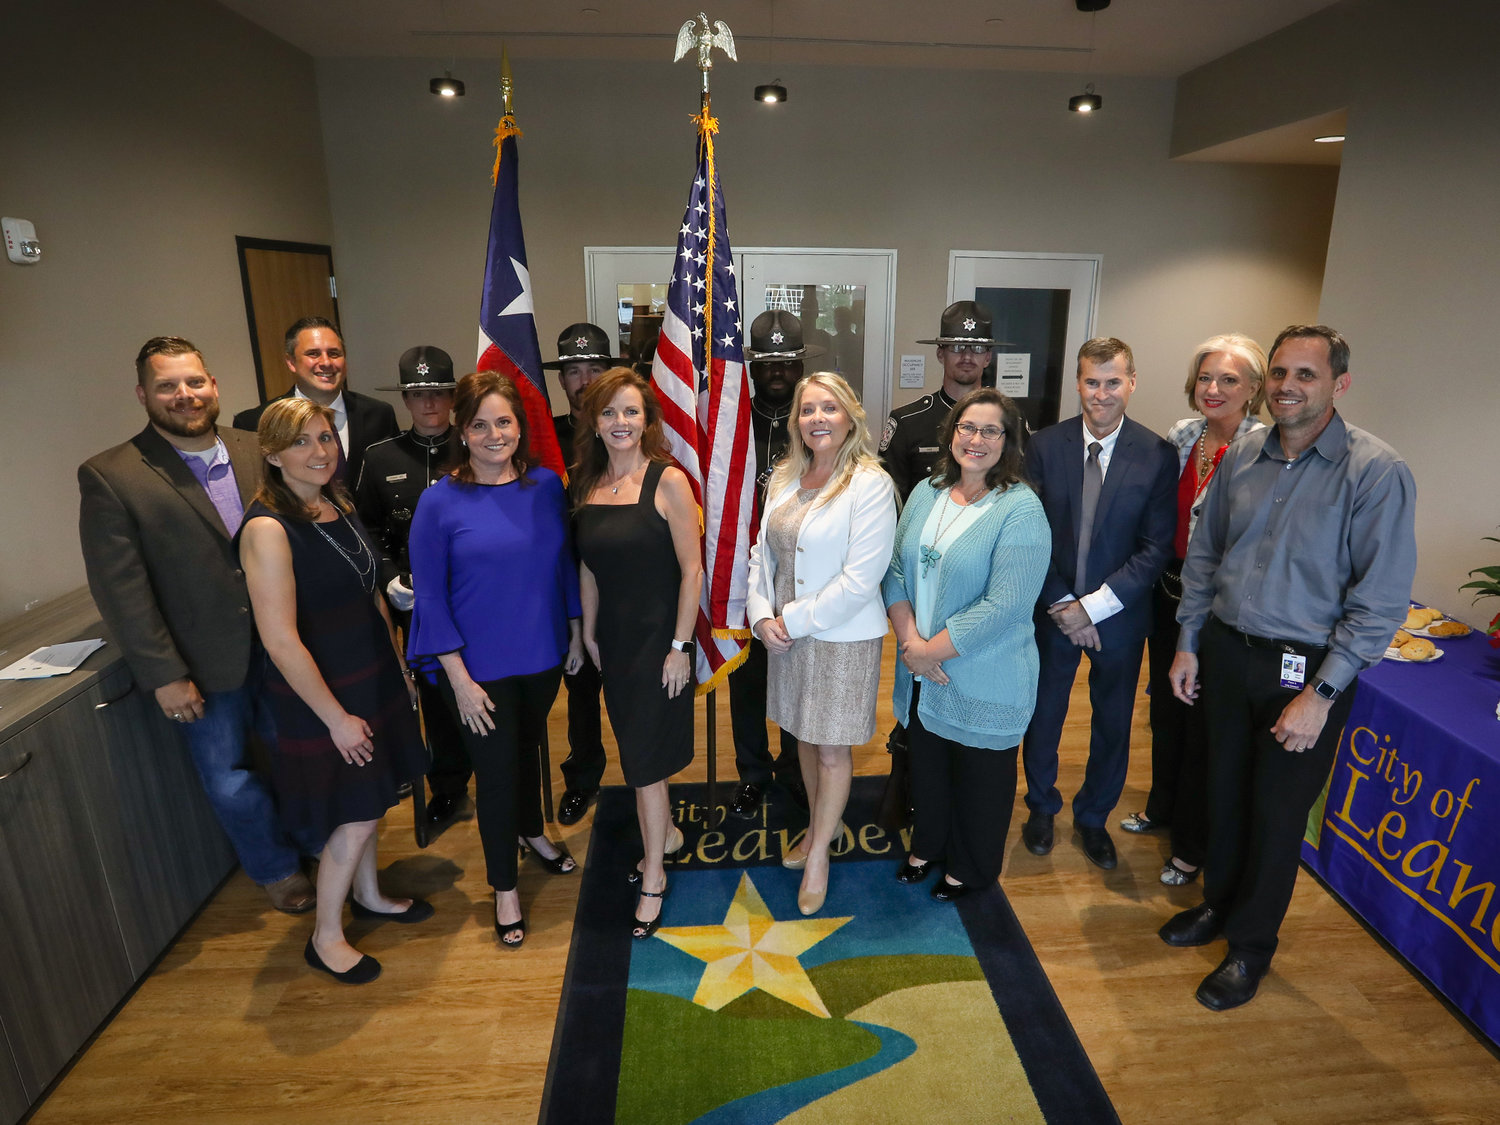 Members of the 2018-19 and the 2019-20 Leander City Councils pose for a photograph during the May 16 regular council meeting at which newly-elected members Kathryn Pantalion-Parker, Jason Shaw and Chris Czernek were sworn into office.